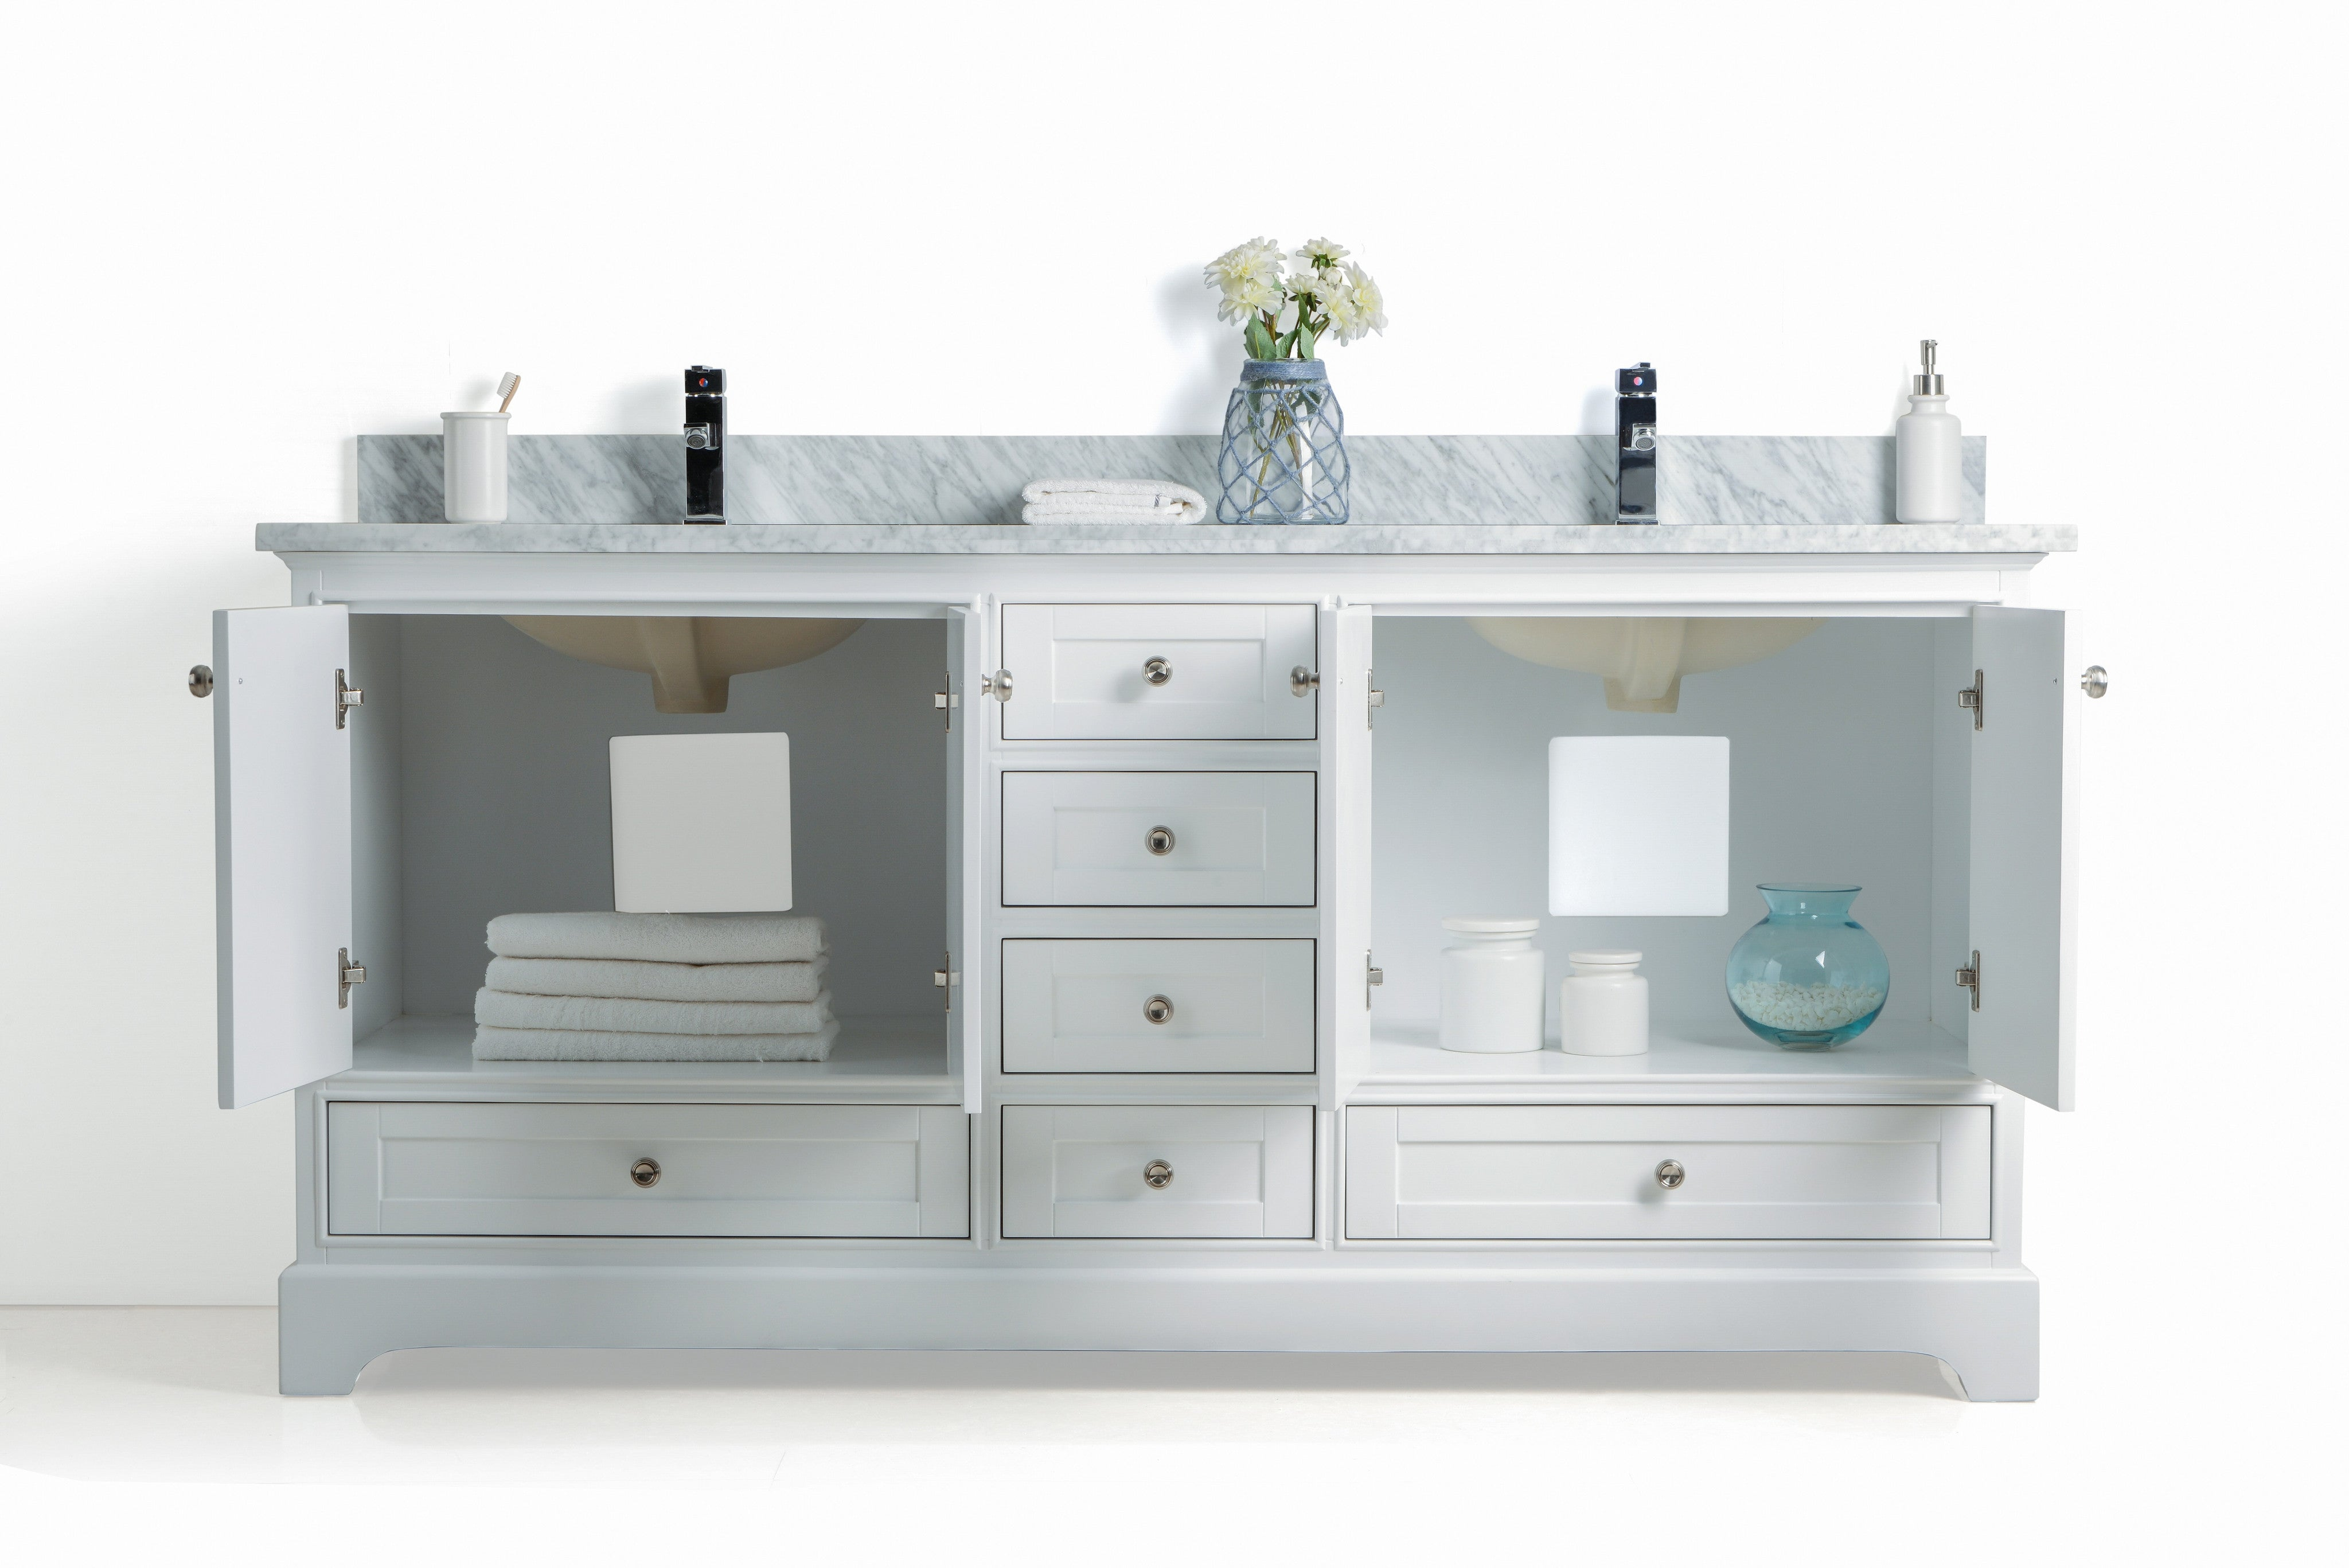 72 inch double sink vanity. double sink vanity in white 72 inch